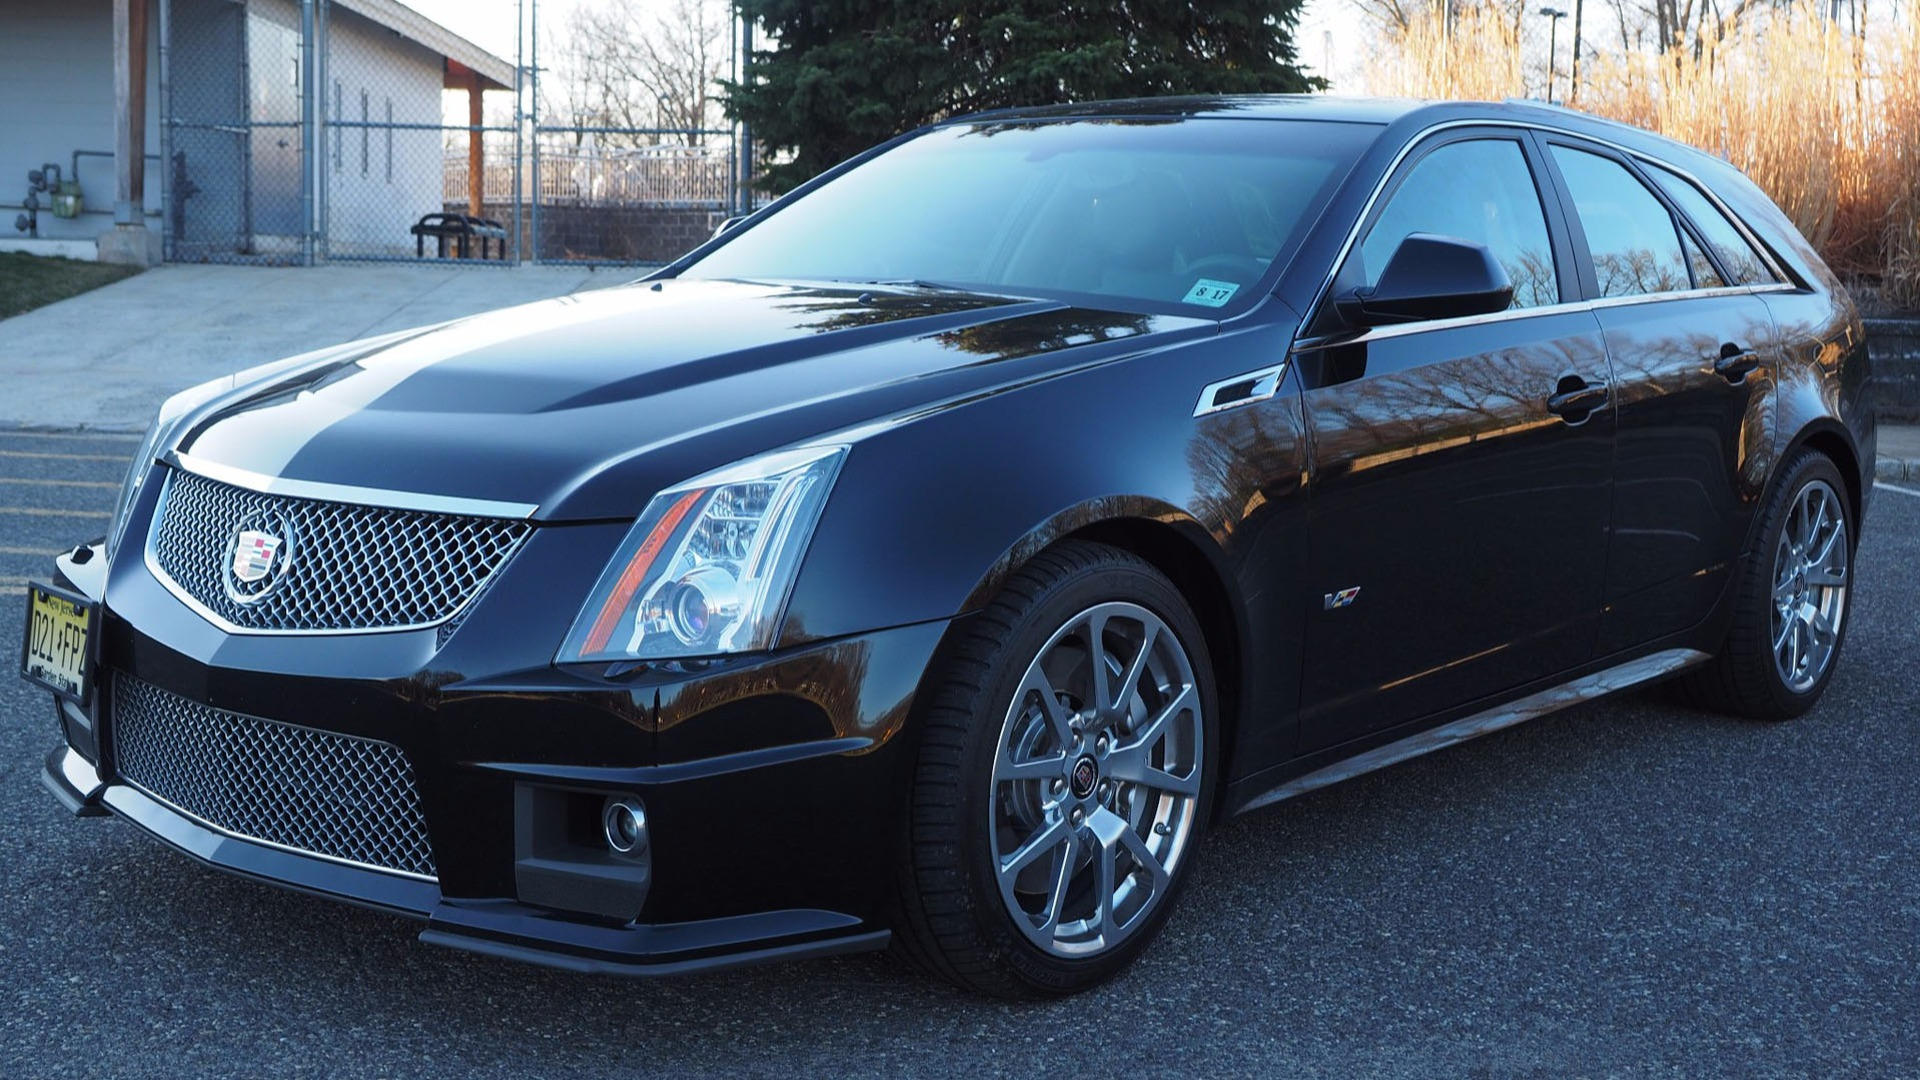 Cadillac Cts V Wagon For Sale >> Score This Rare 2012 Cadillac Cts V Manual Wagon While It S Affordable